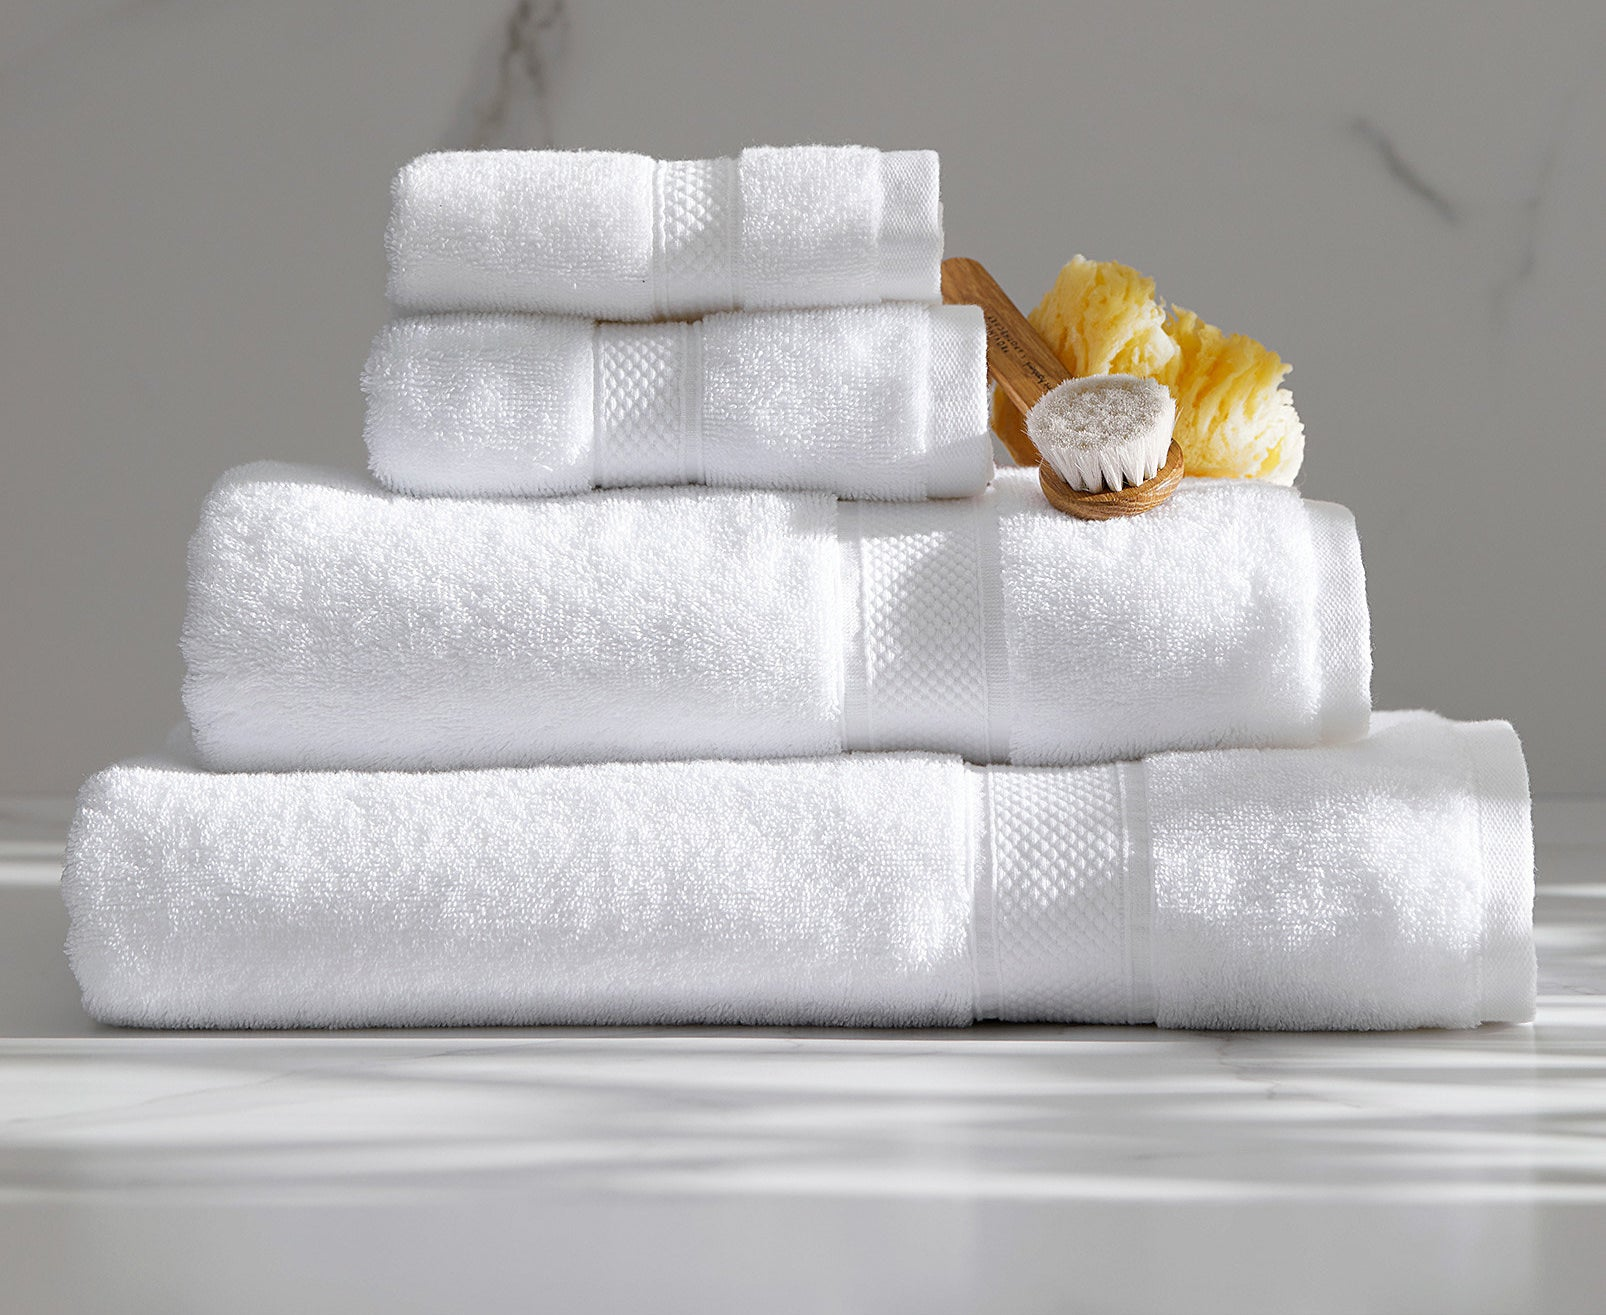 A stack of folded towels